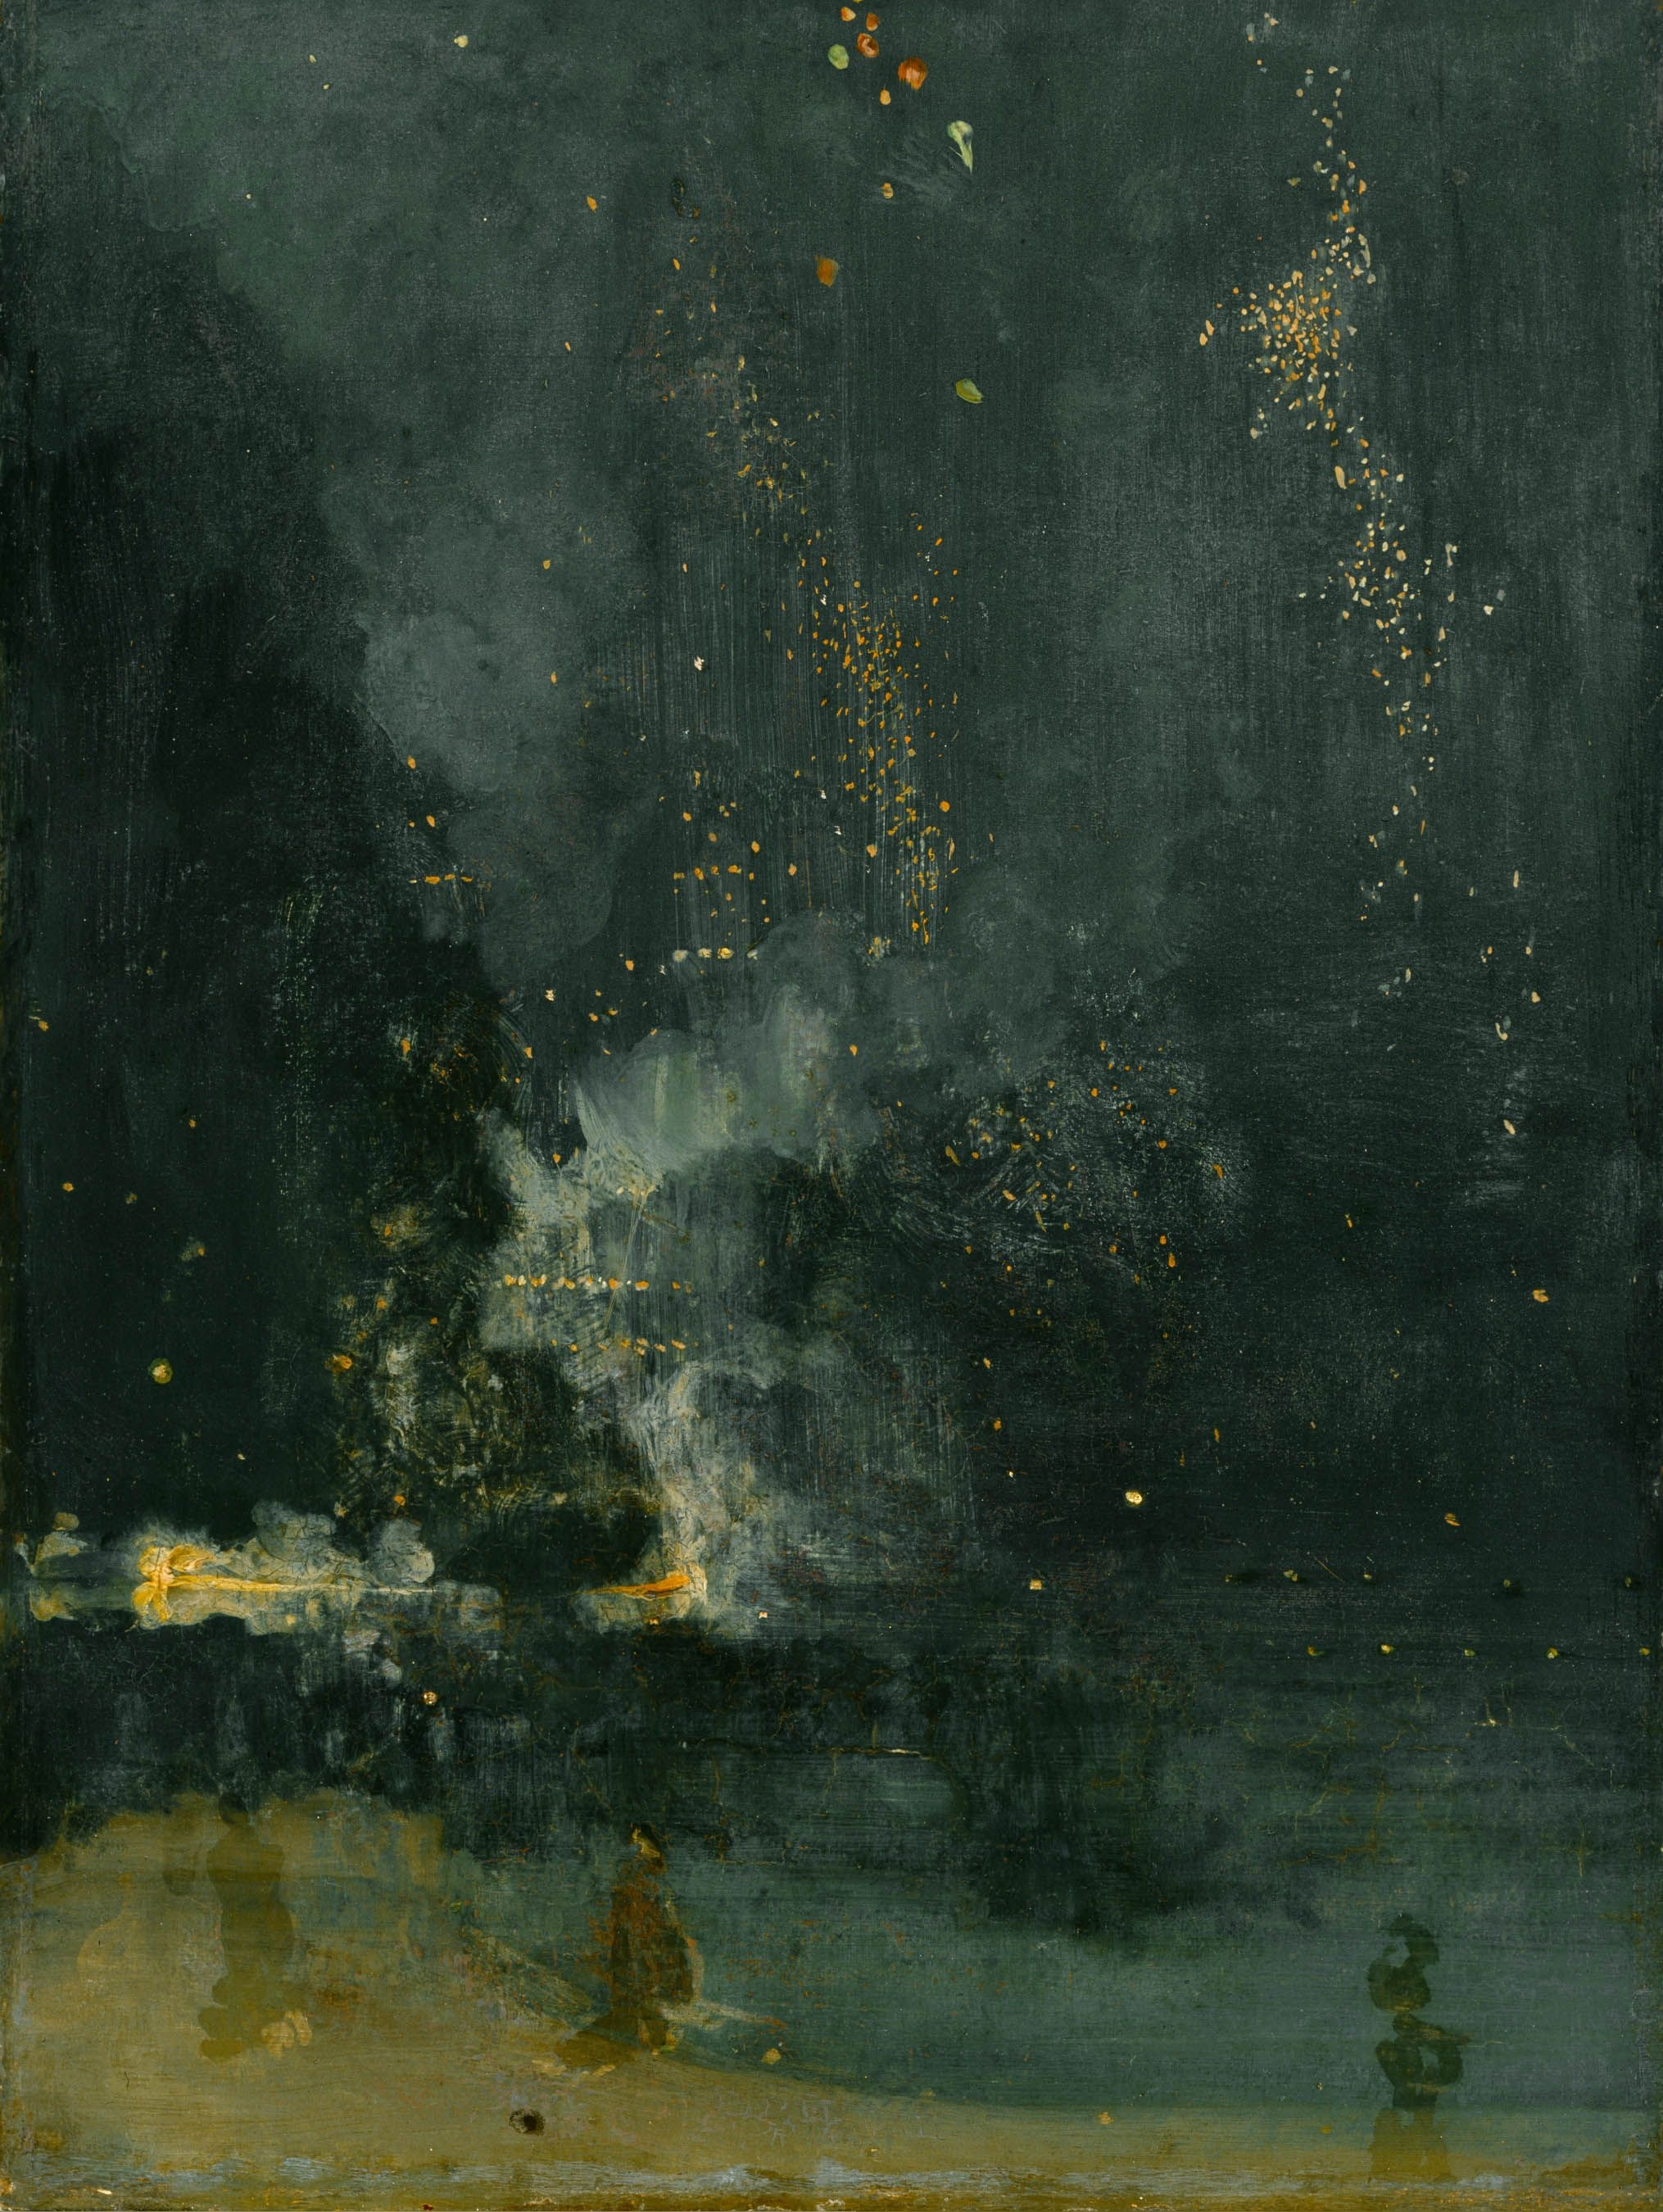 Nocturne in Black and Gold – The Falling Rocket (c. 1872-5) by James Whistler